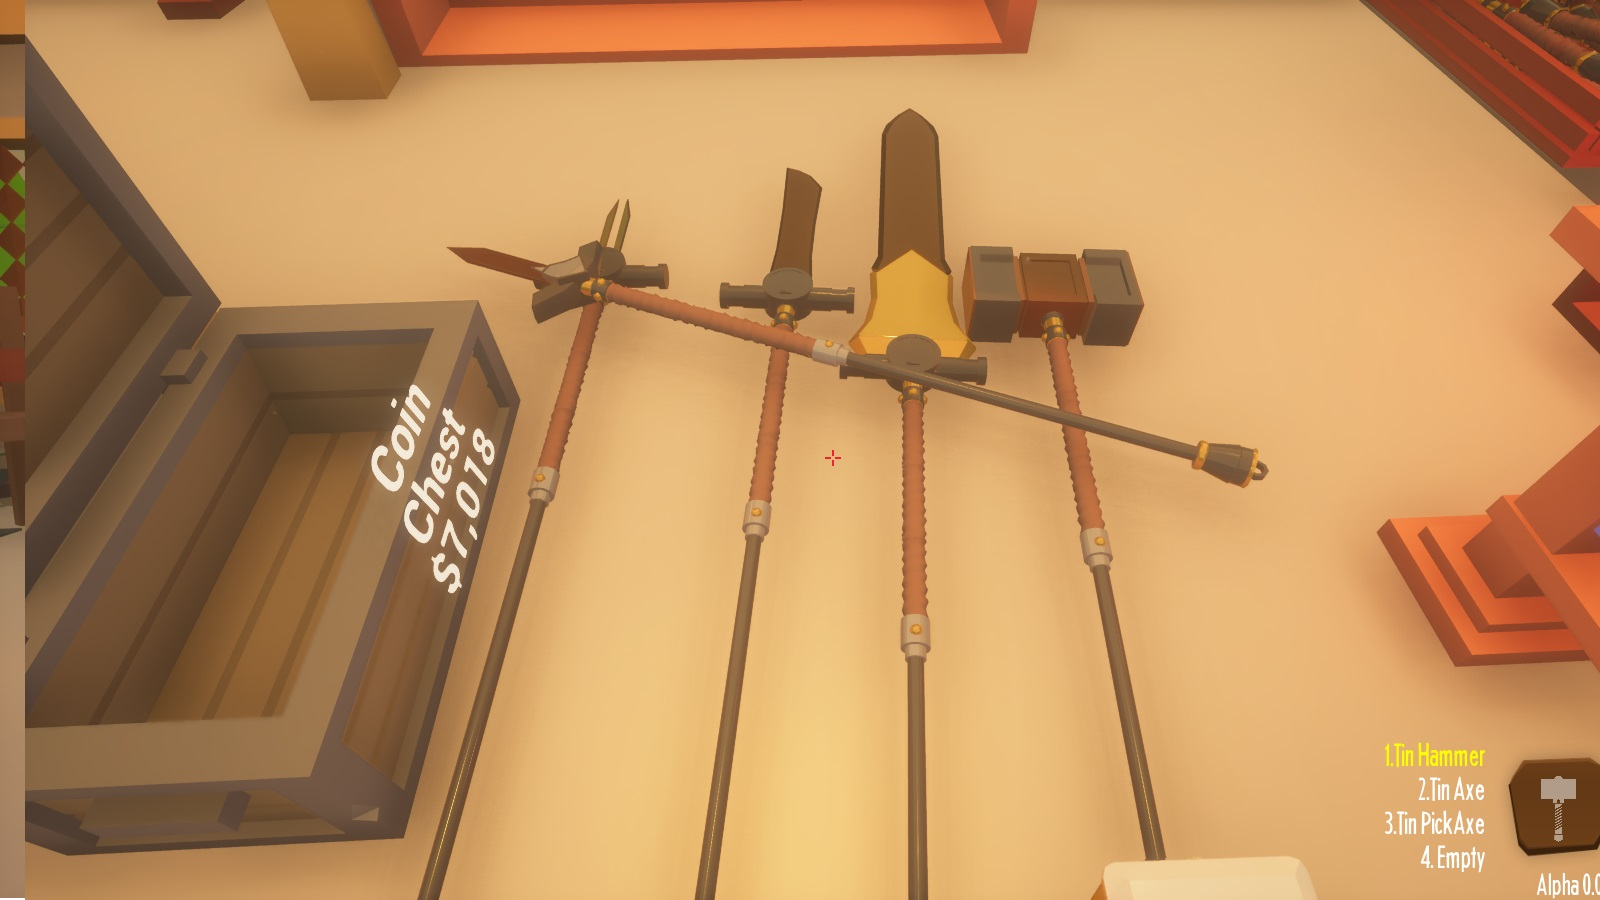 A collection of Polearms - each verified and able to be sold